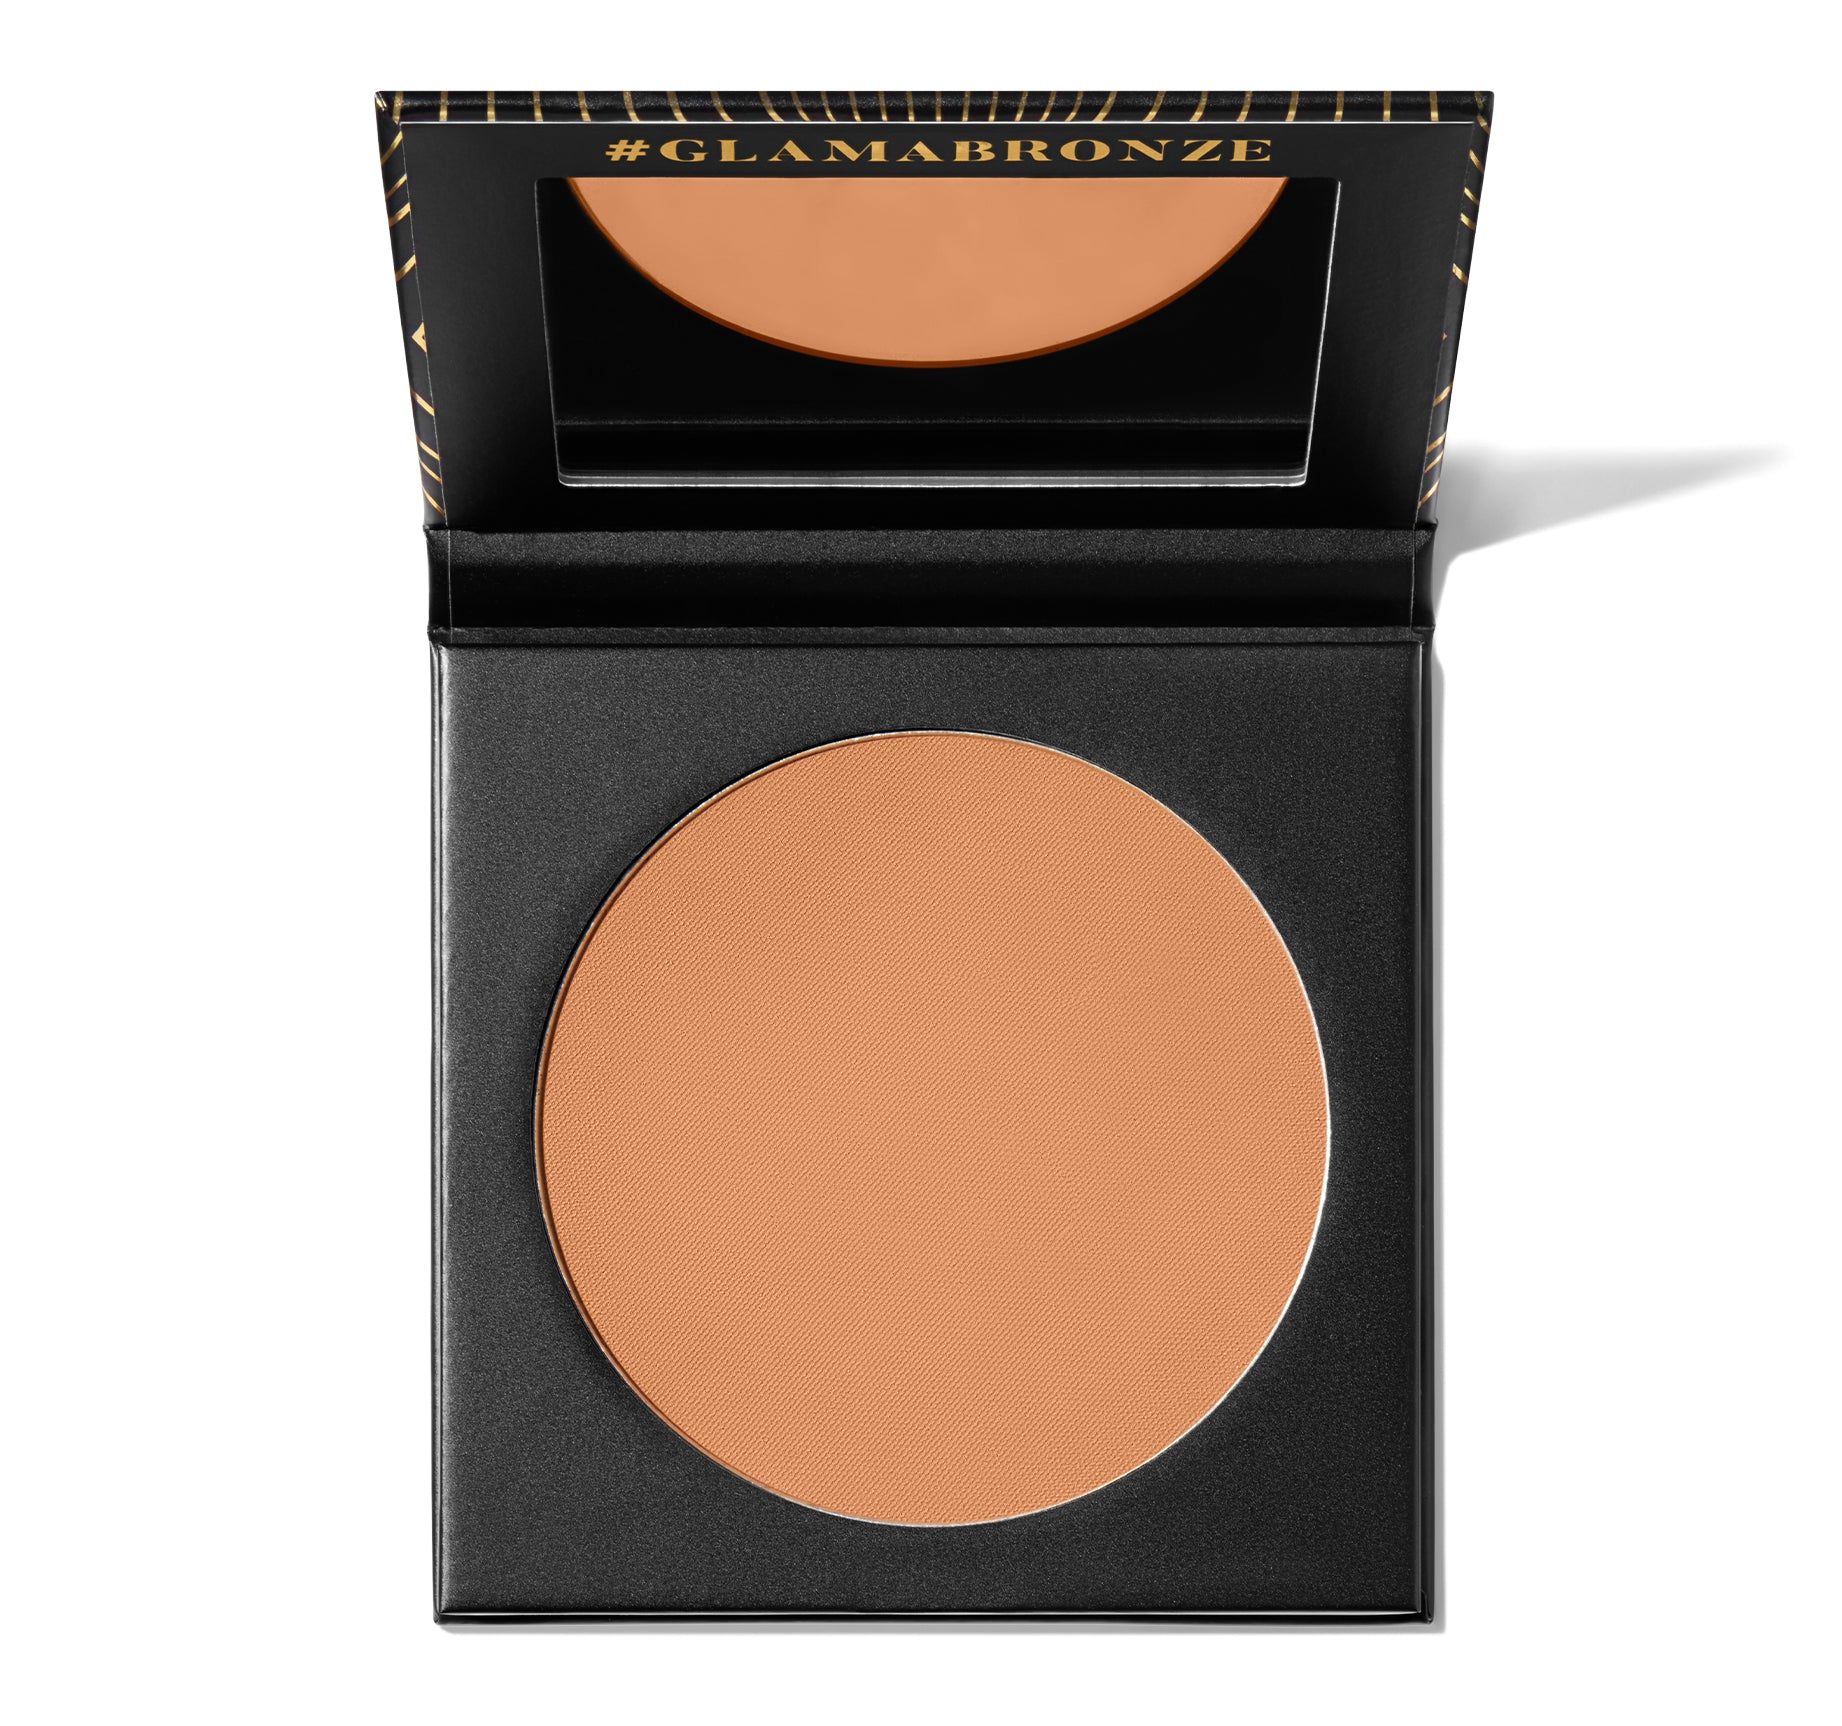 GLAMABRONZE FACE & BODY BRONZER - ICON, view larger image